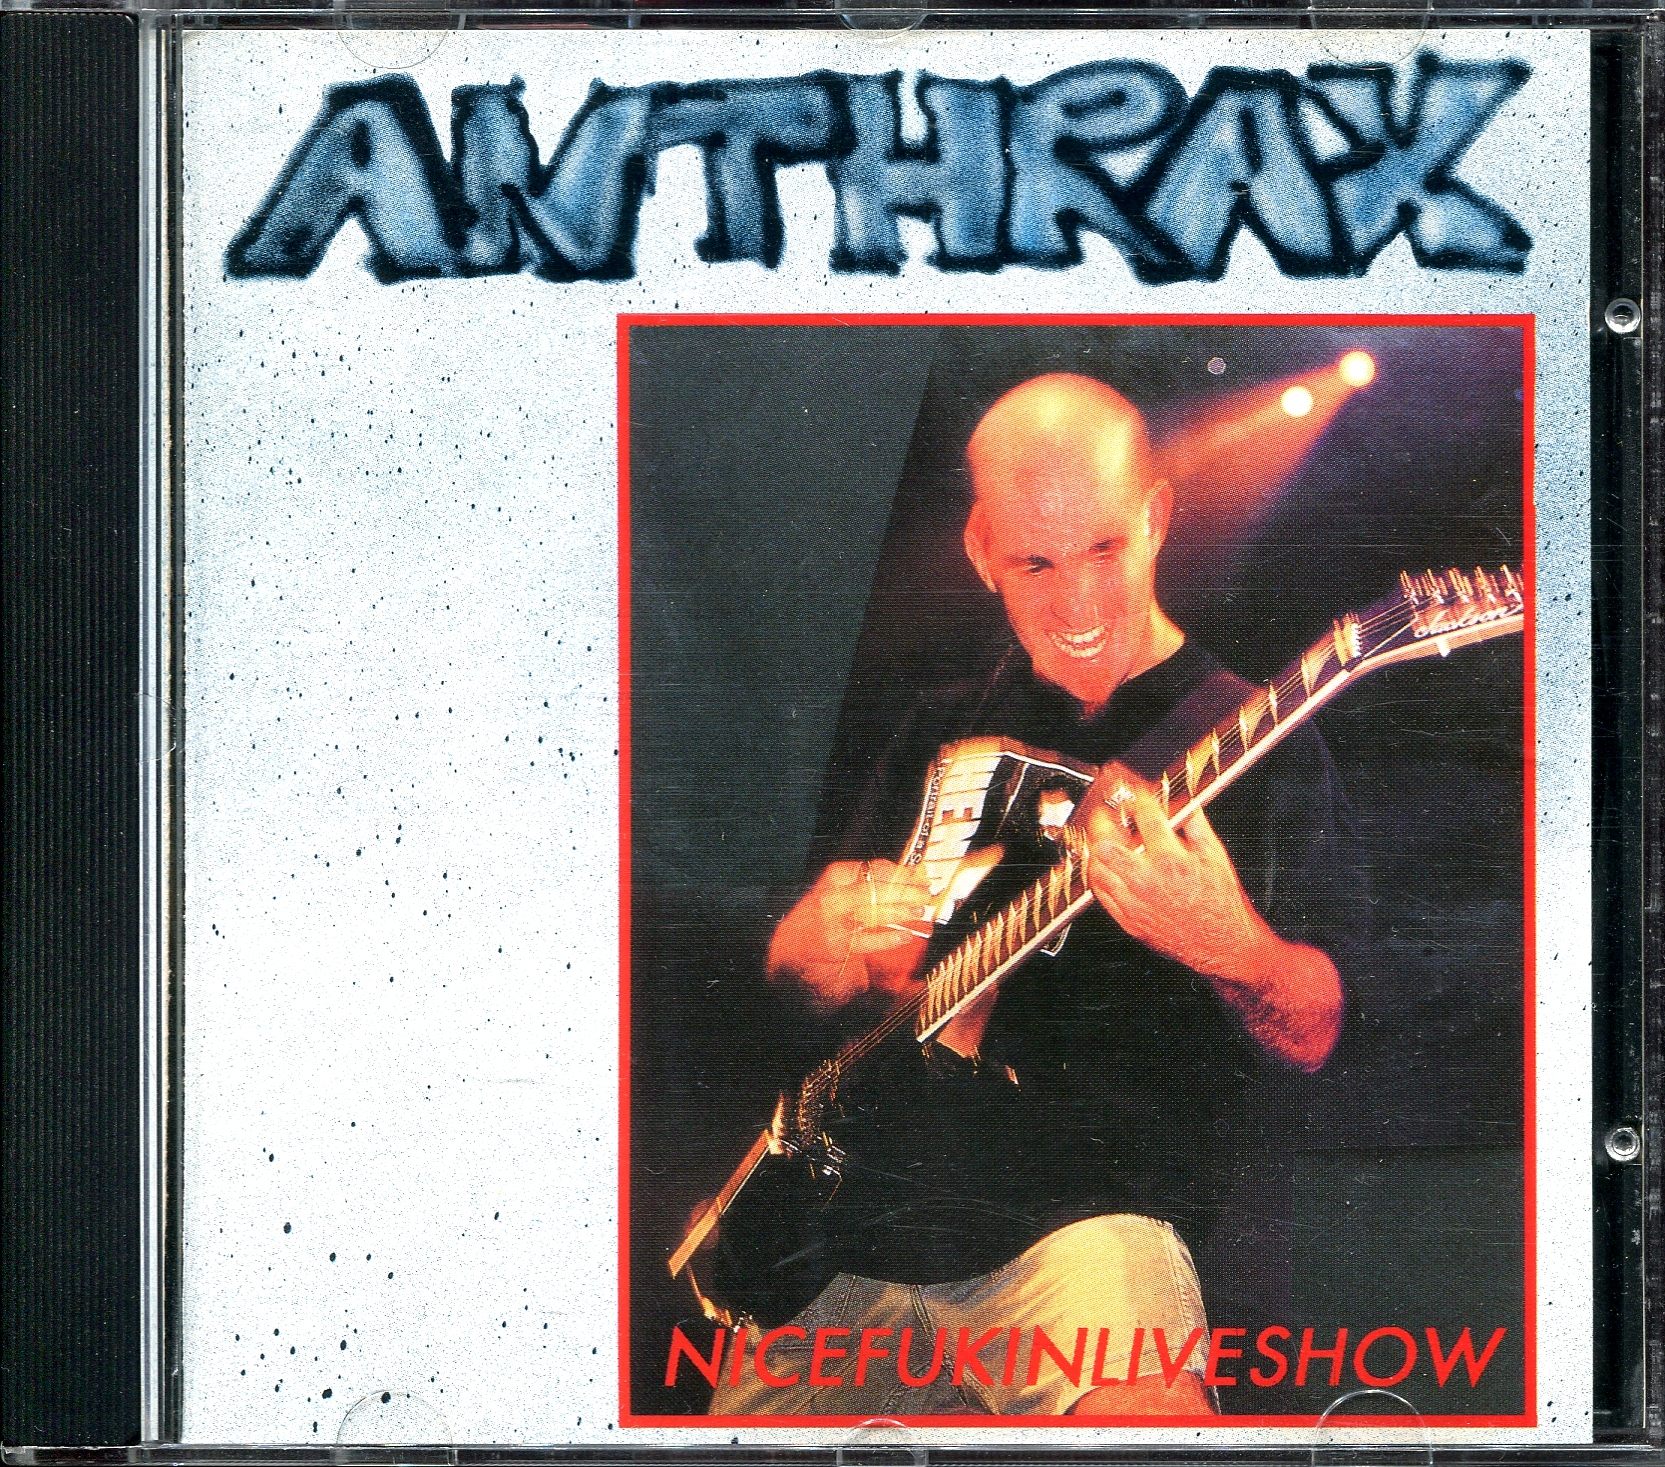 Anthrax - 1989 - Nicefukinliveshow (Germany Main Event Records ME - CD - 018) [lossless]